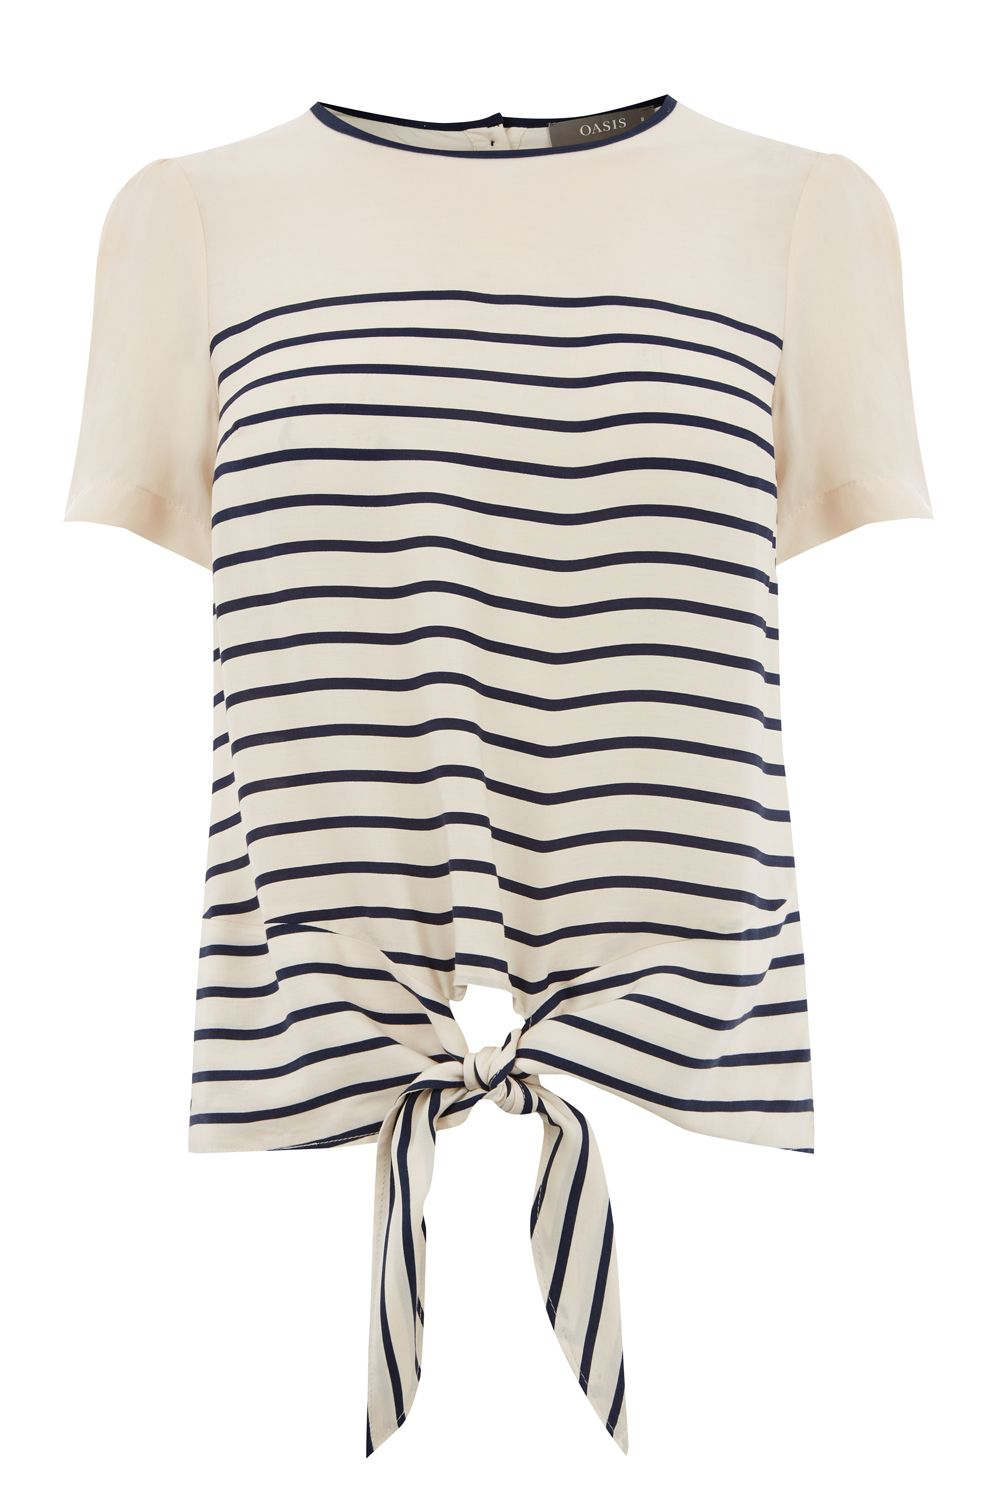 Oasis STRIPE TIE FRONT TEE, Multi-Coloured